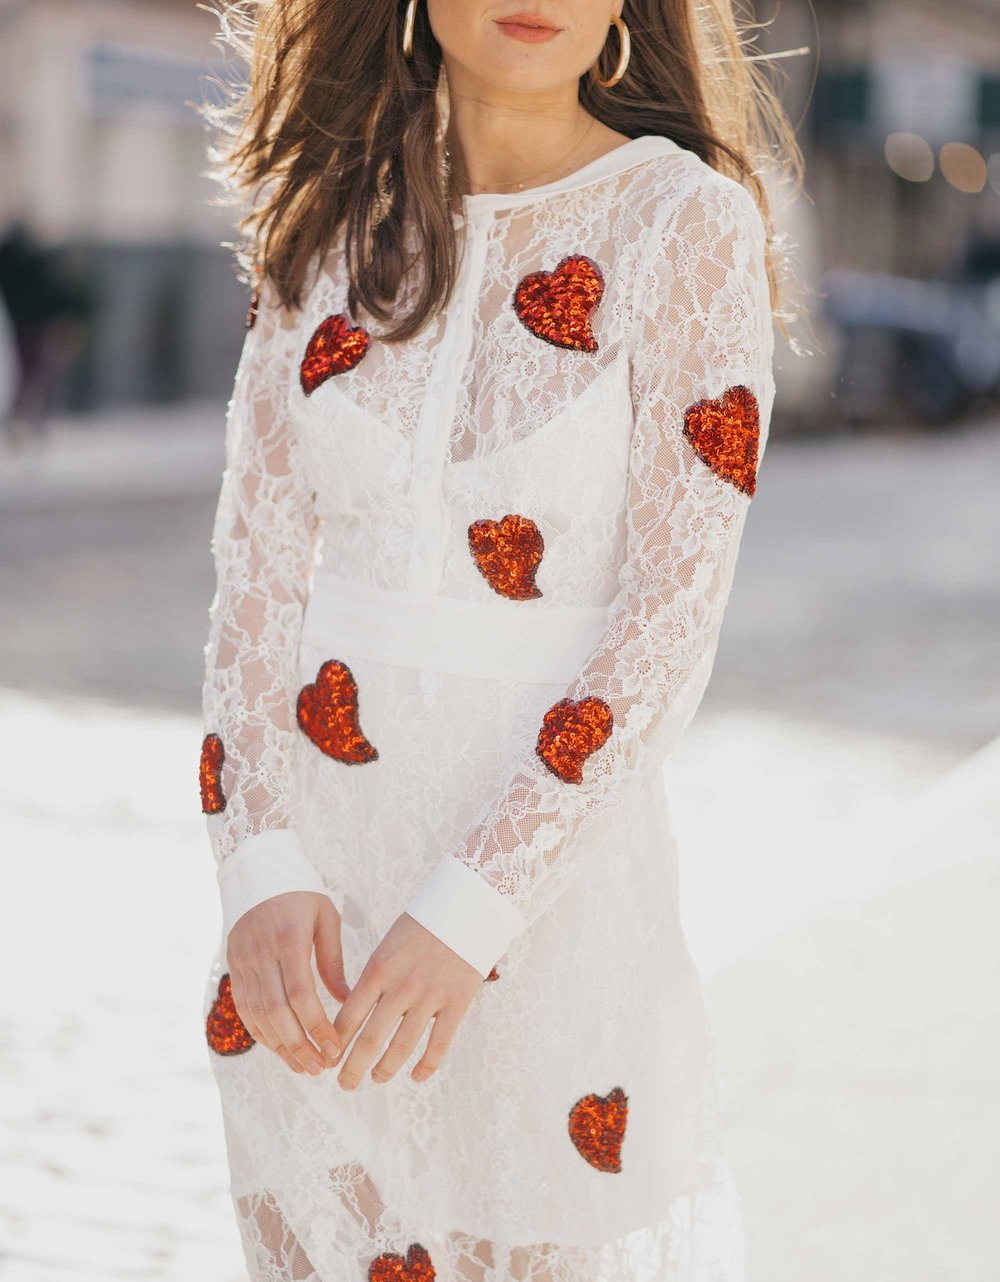 For-Love-and-Lemons-La-Zosia-Midi-Dress-Sheer-lace-sequin-heart-applique13.jpg